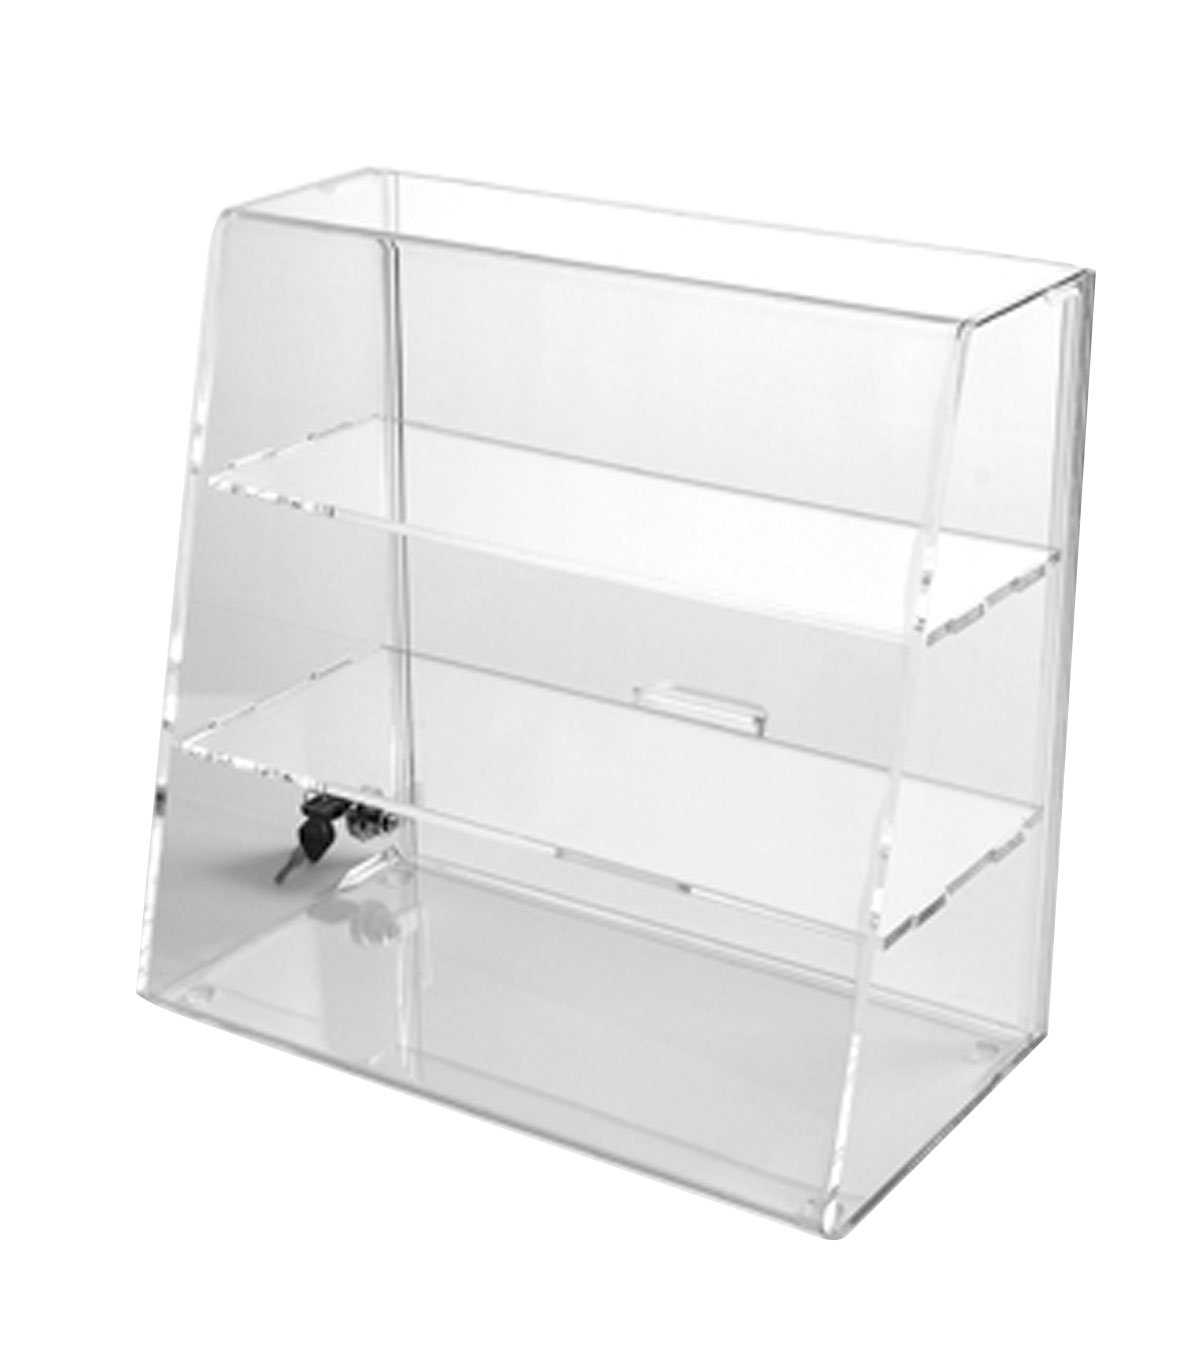 amazon com acrylic display case with 2 straight shelves locking rh amazon com